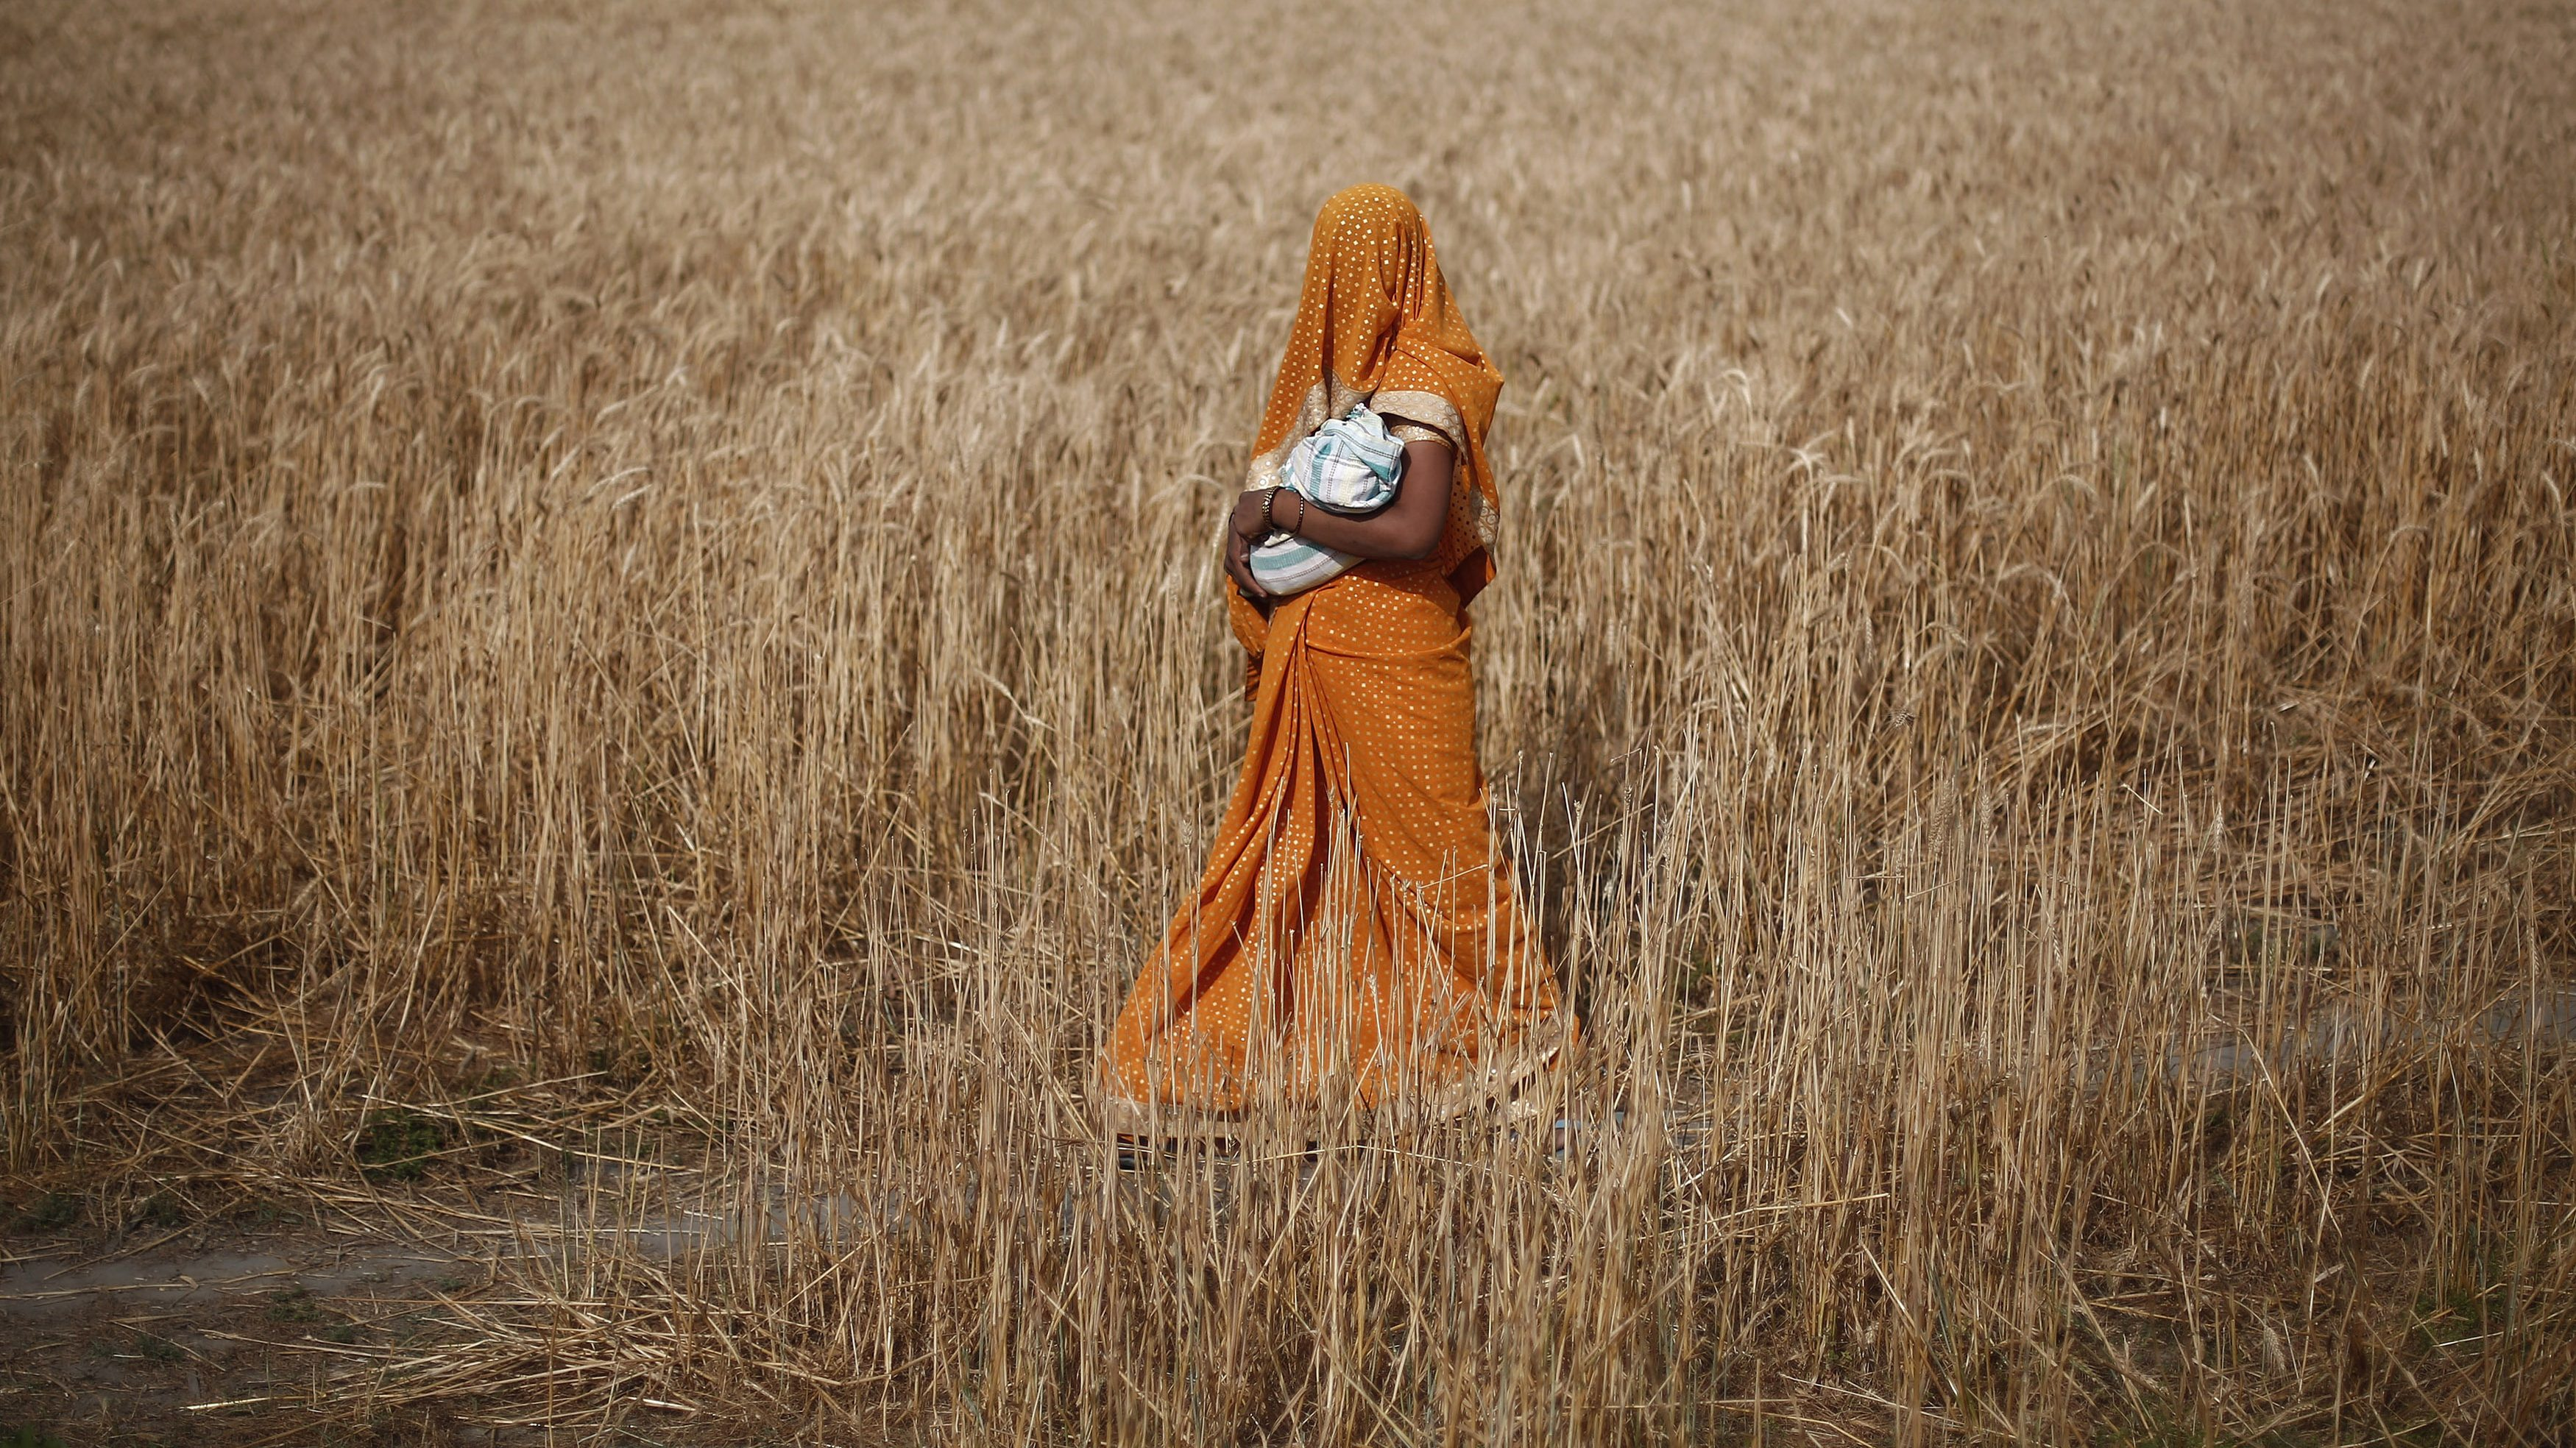 Malnourishment high among kids of Indian women working on farms